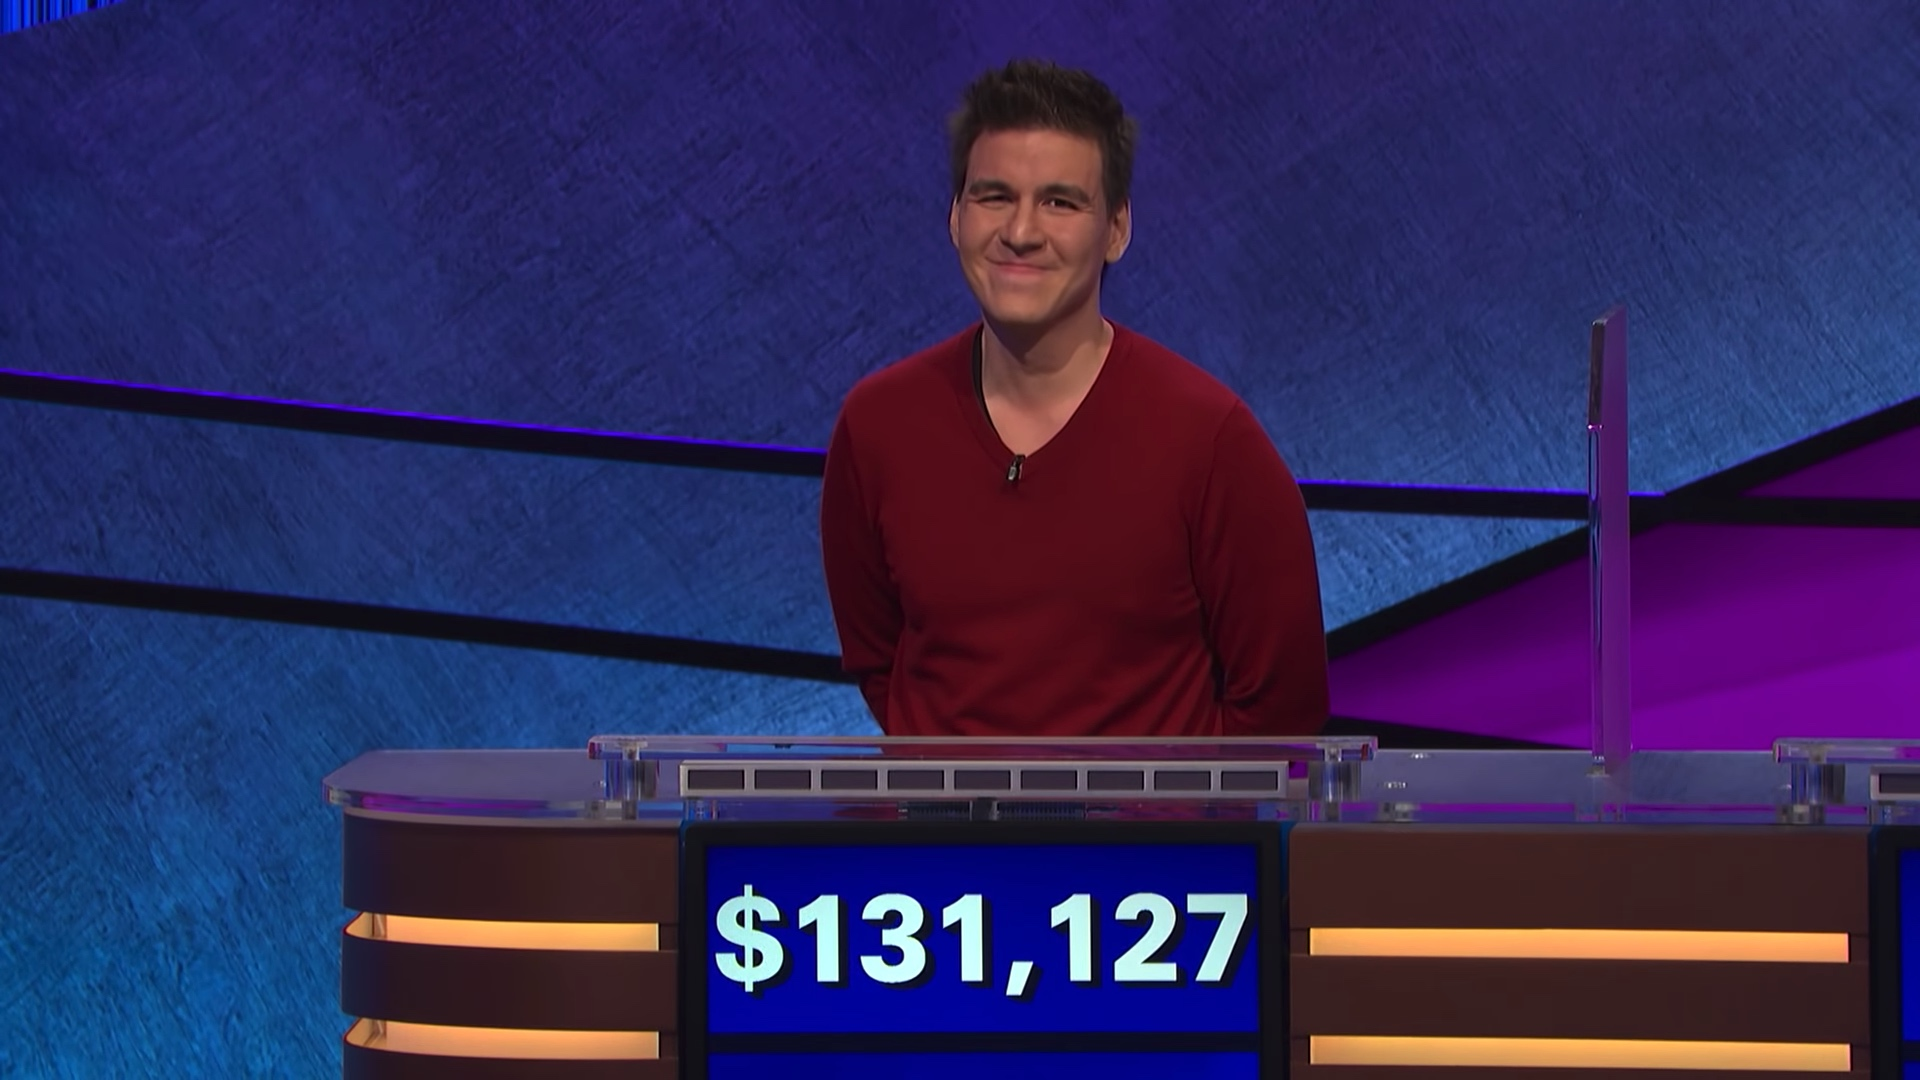 James Holzhauer smiles after winning $131,127 in a single game. Image: Sony Pictures Entertainment